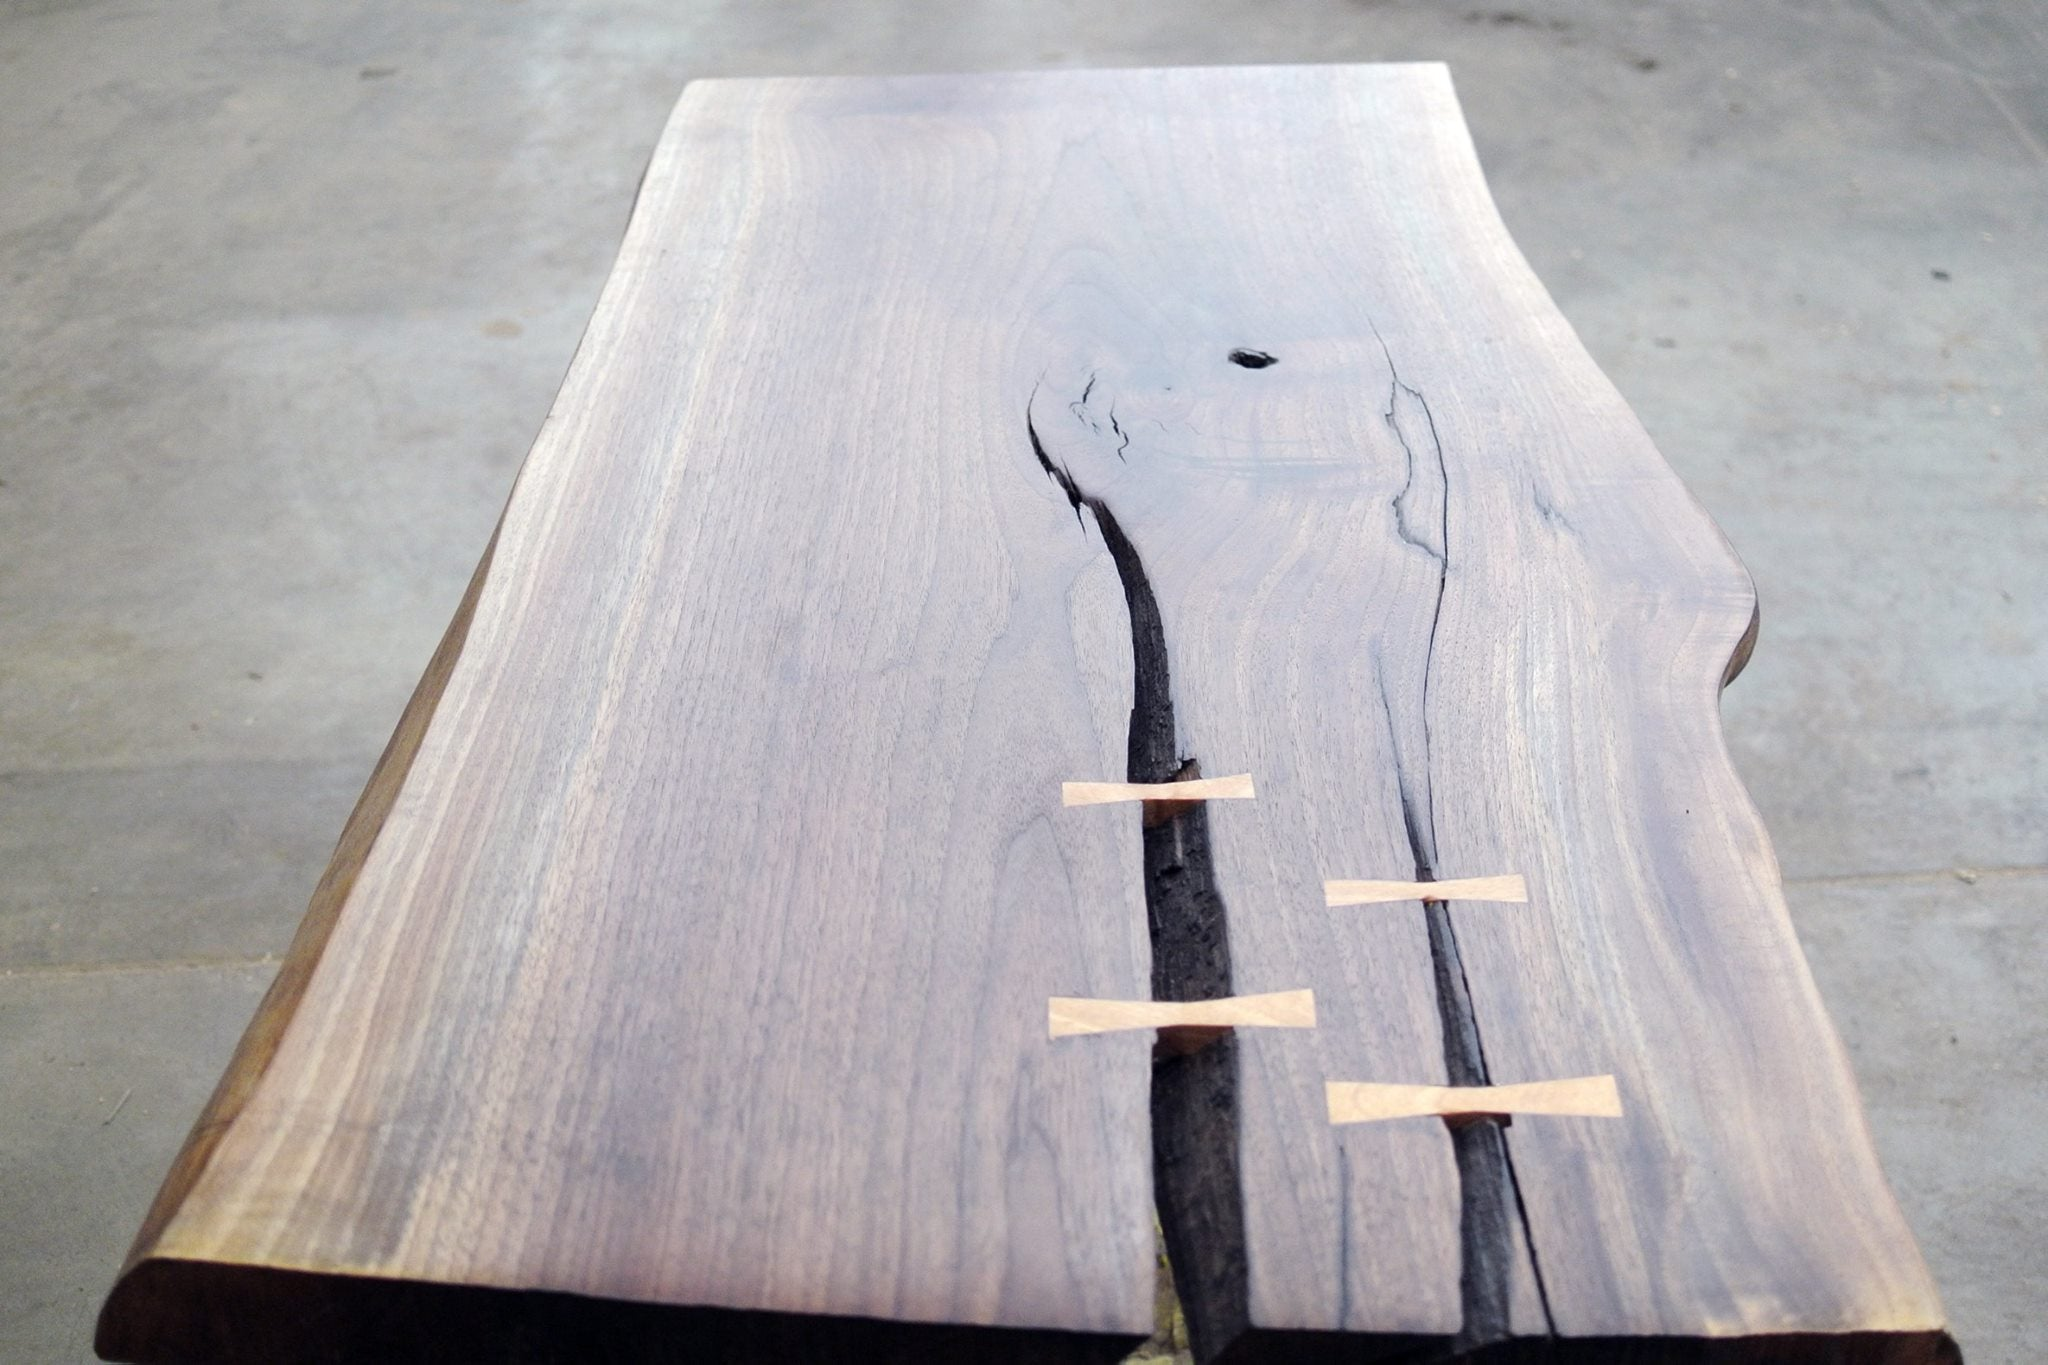 Live Edge Slab Coffee Table (September 19, 26, October 3, 10, 17)